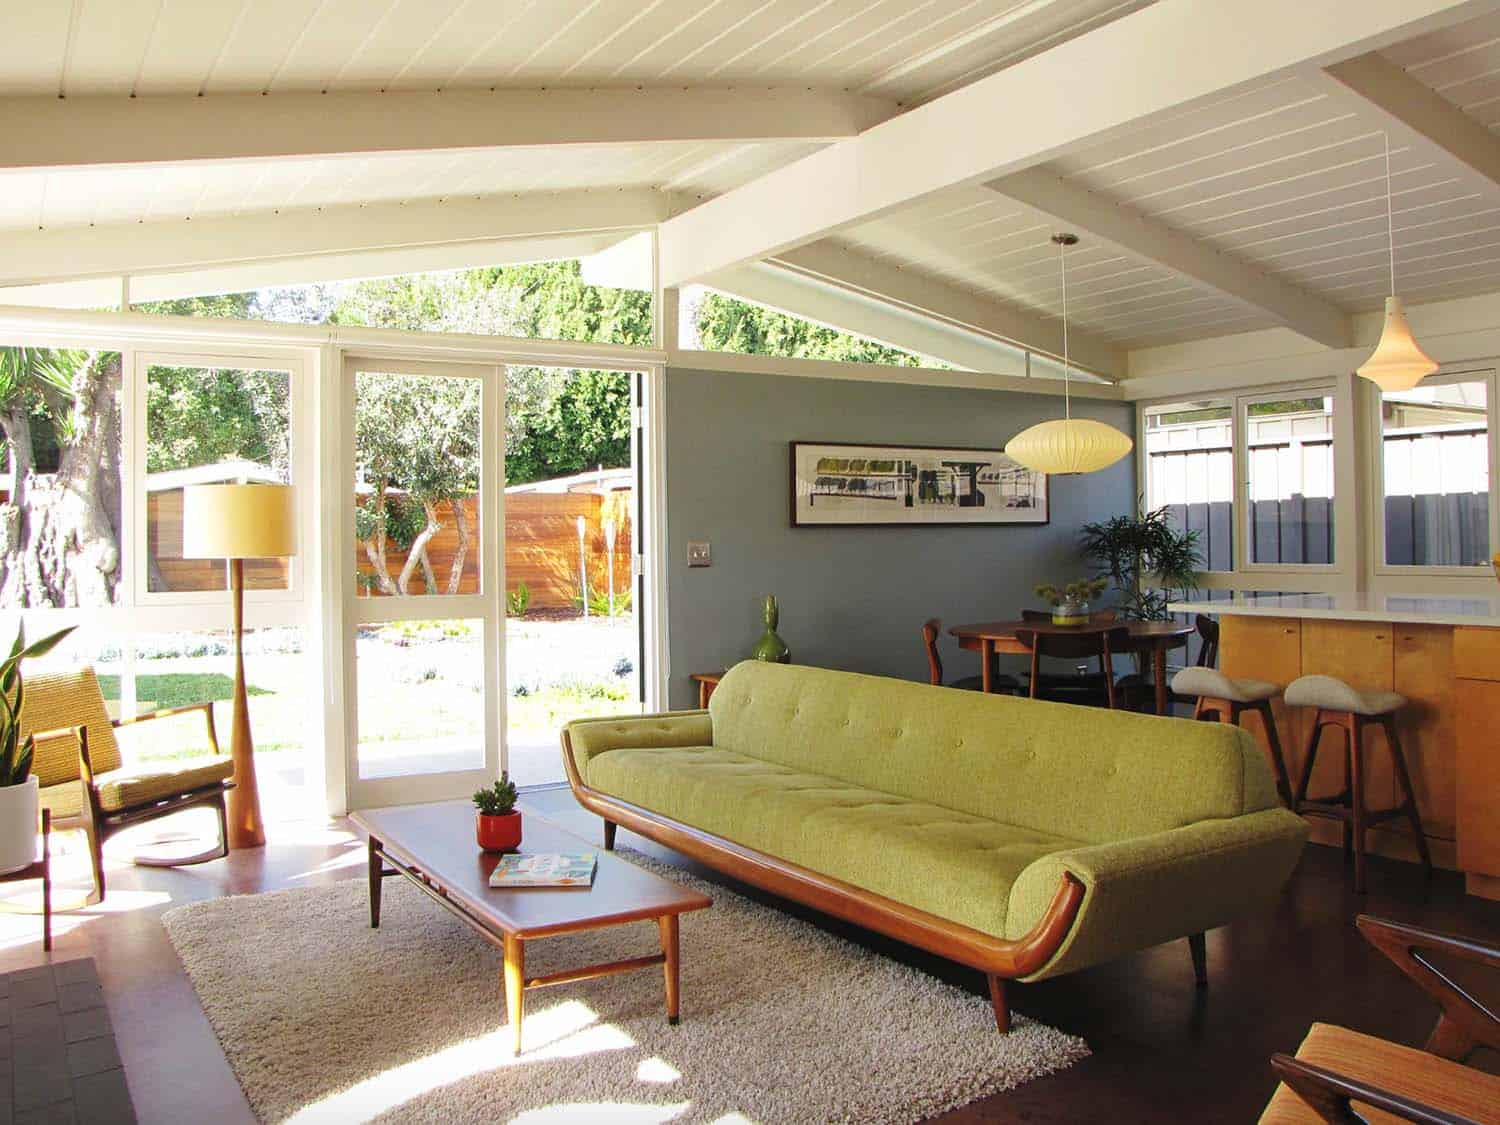 38 Absolutely Gorgeous Mid Century Modern Living Room Ideas